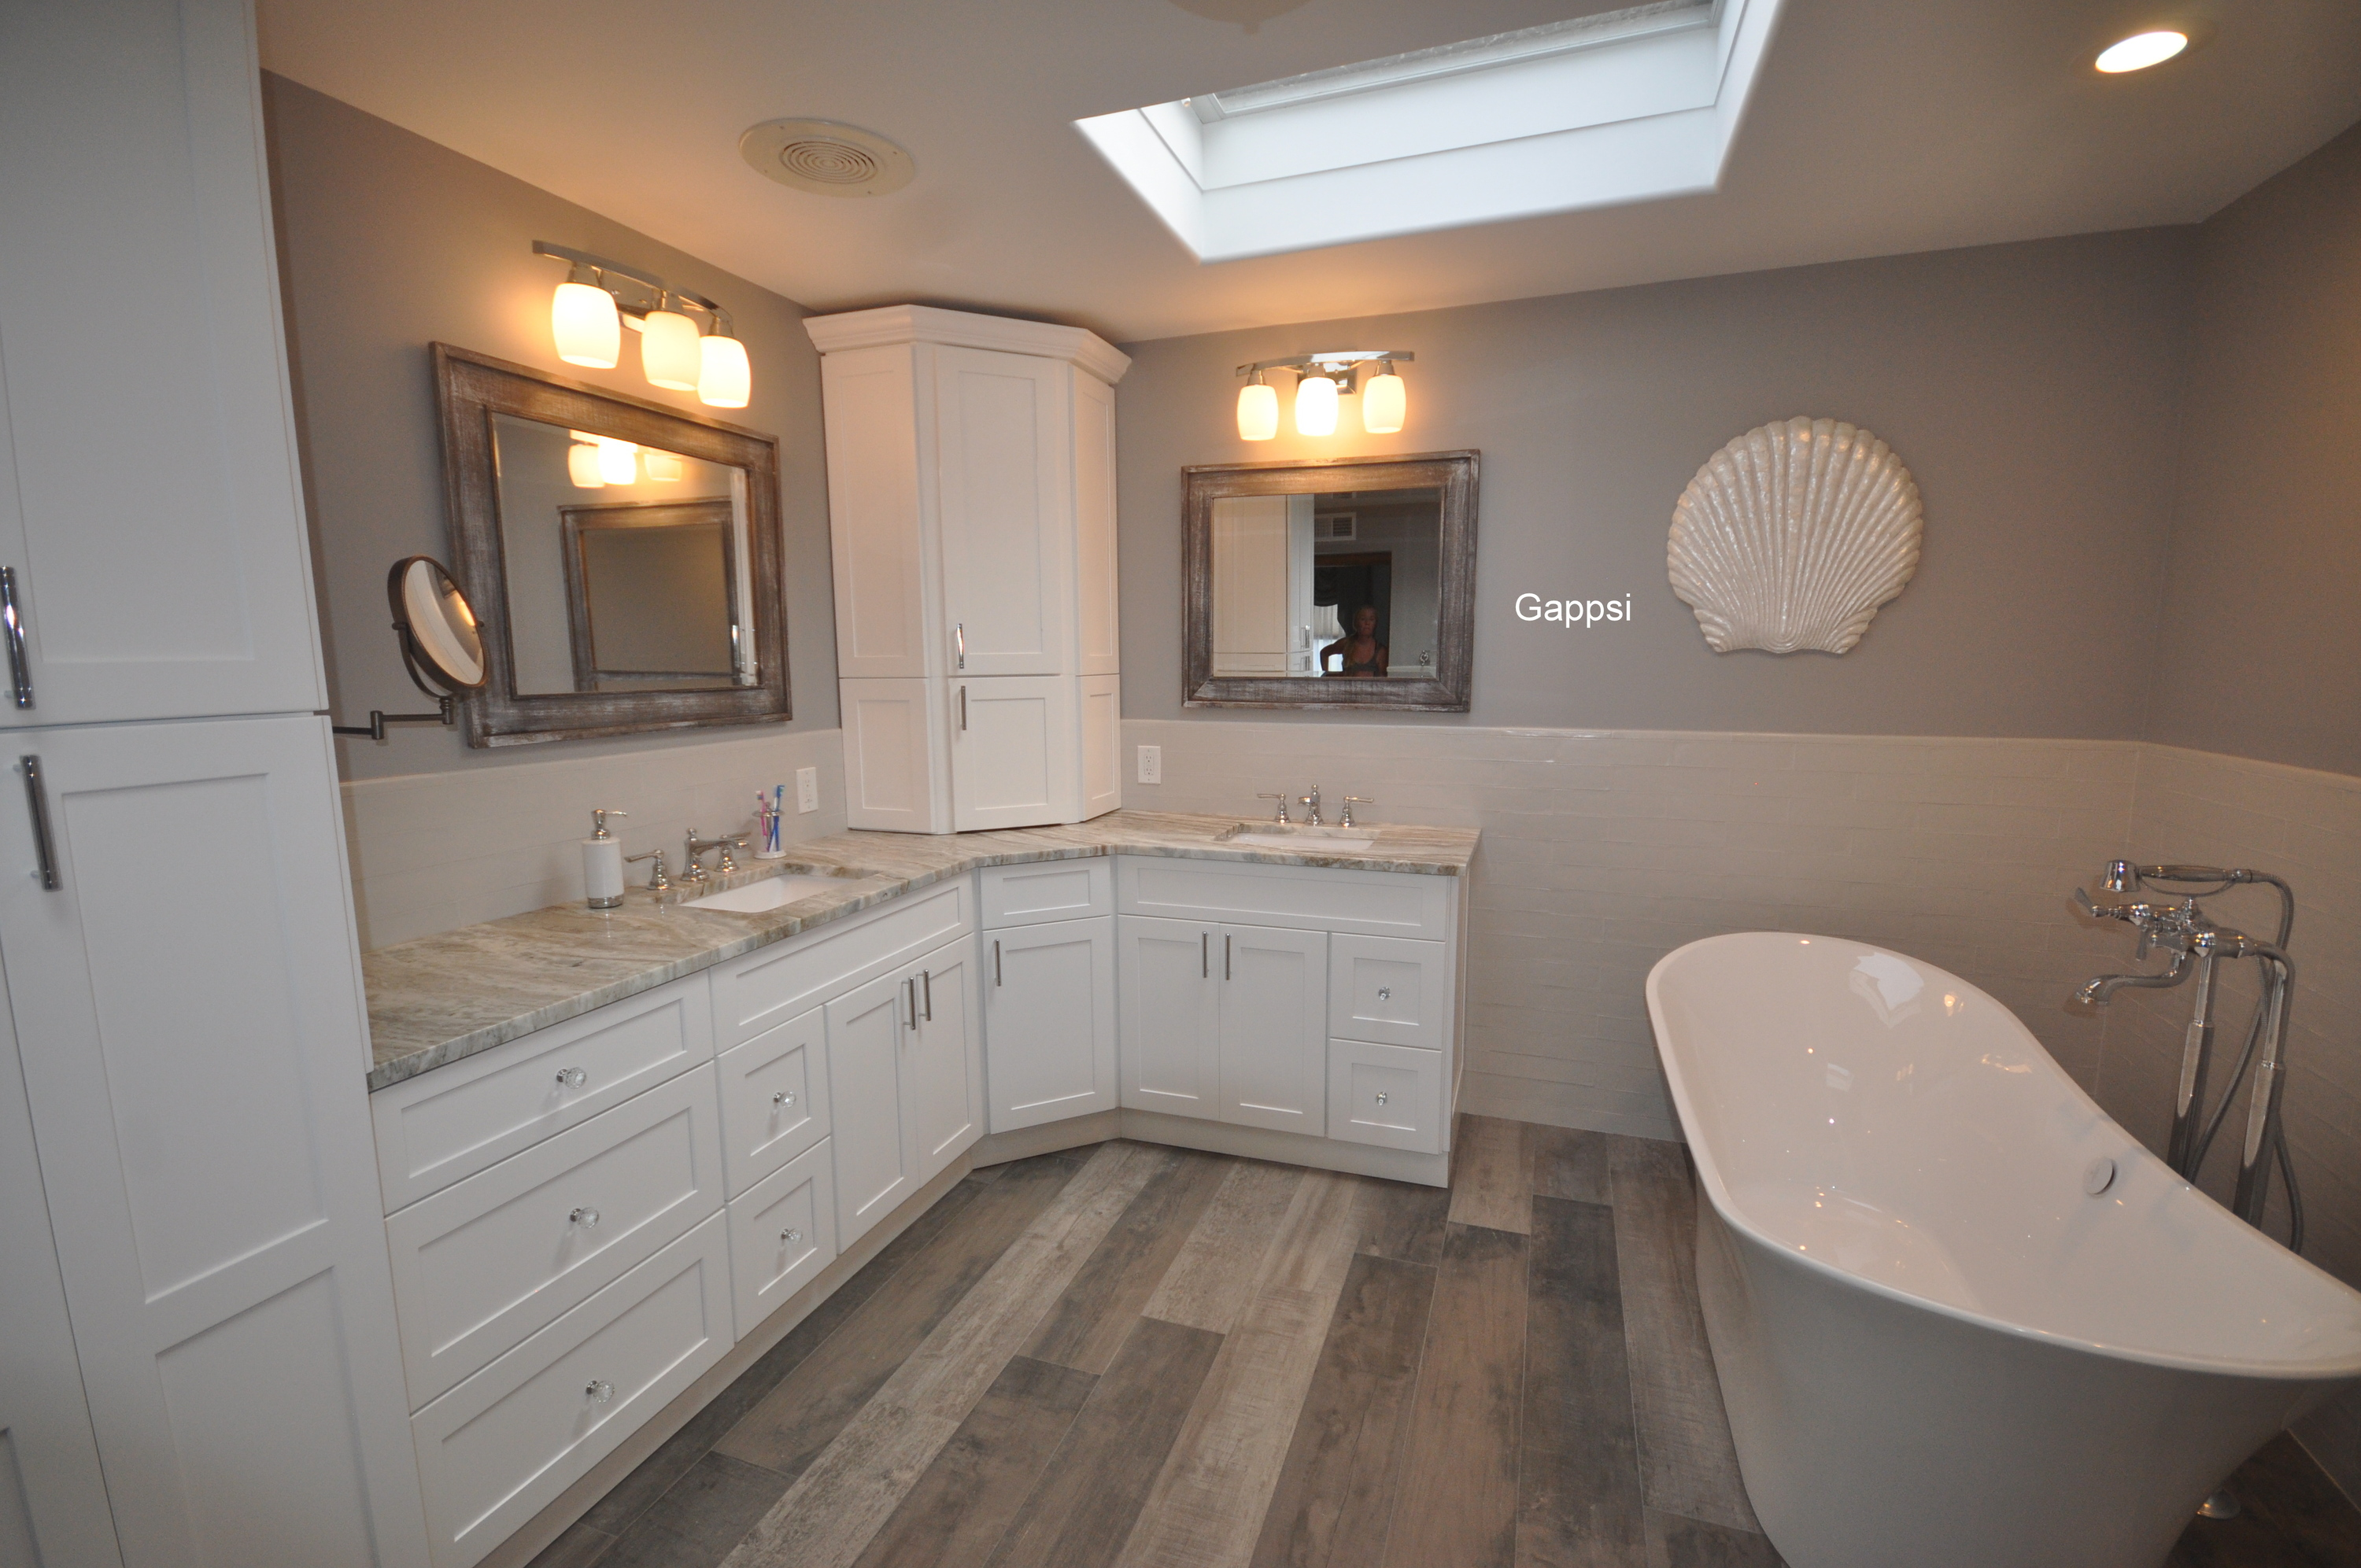 East Islip moorings bathroom remodeling contractor Gappsi